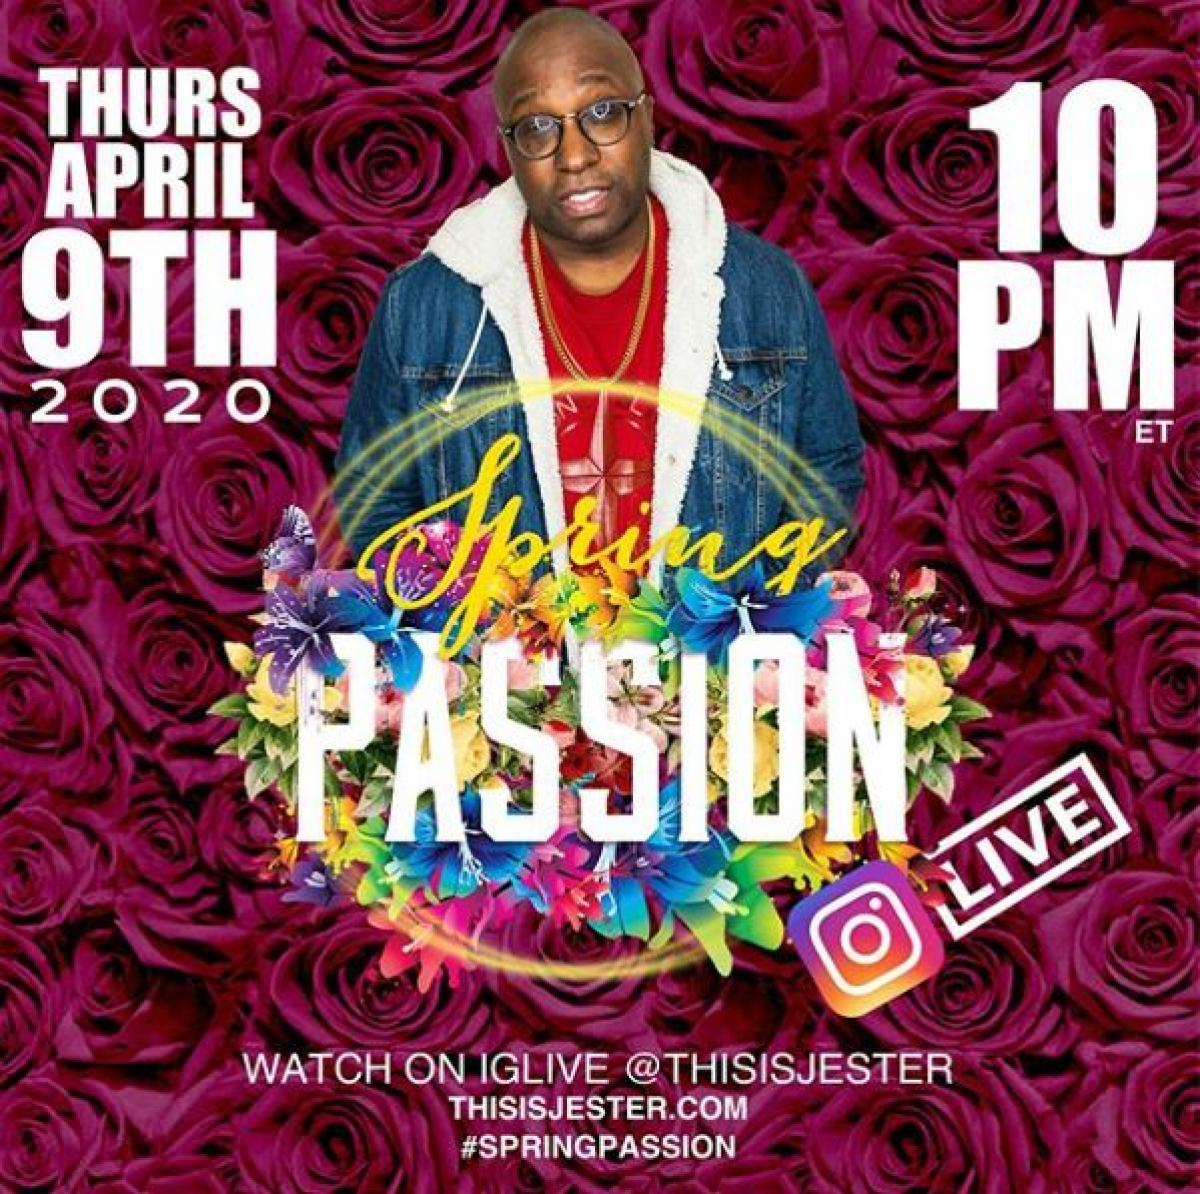 Spring Passion flyer or graphic.